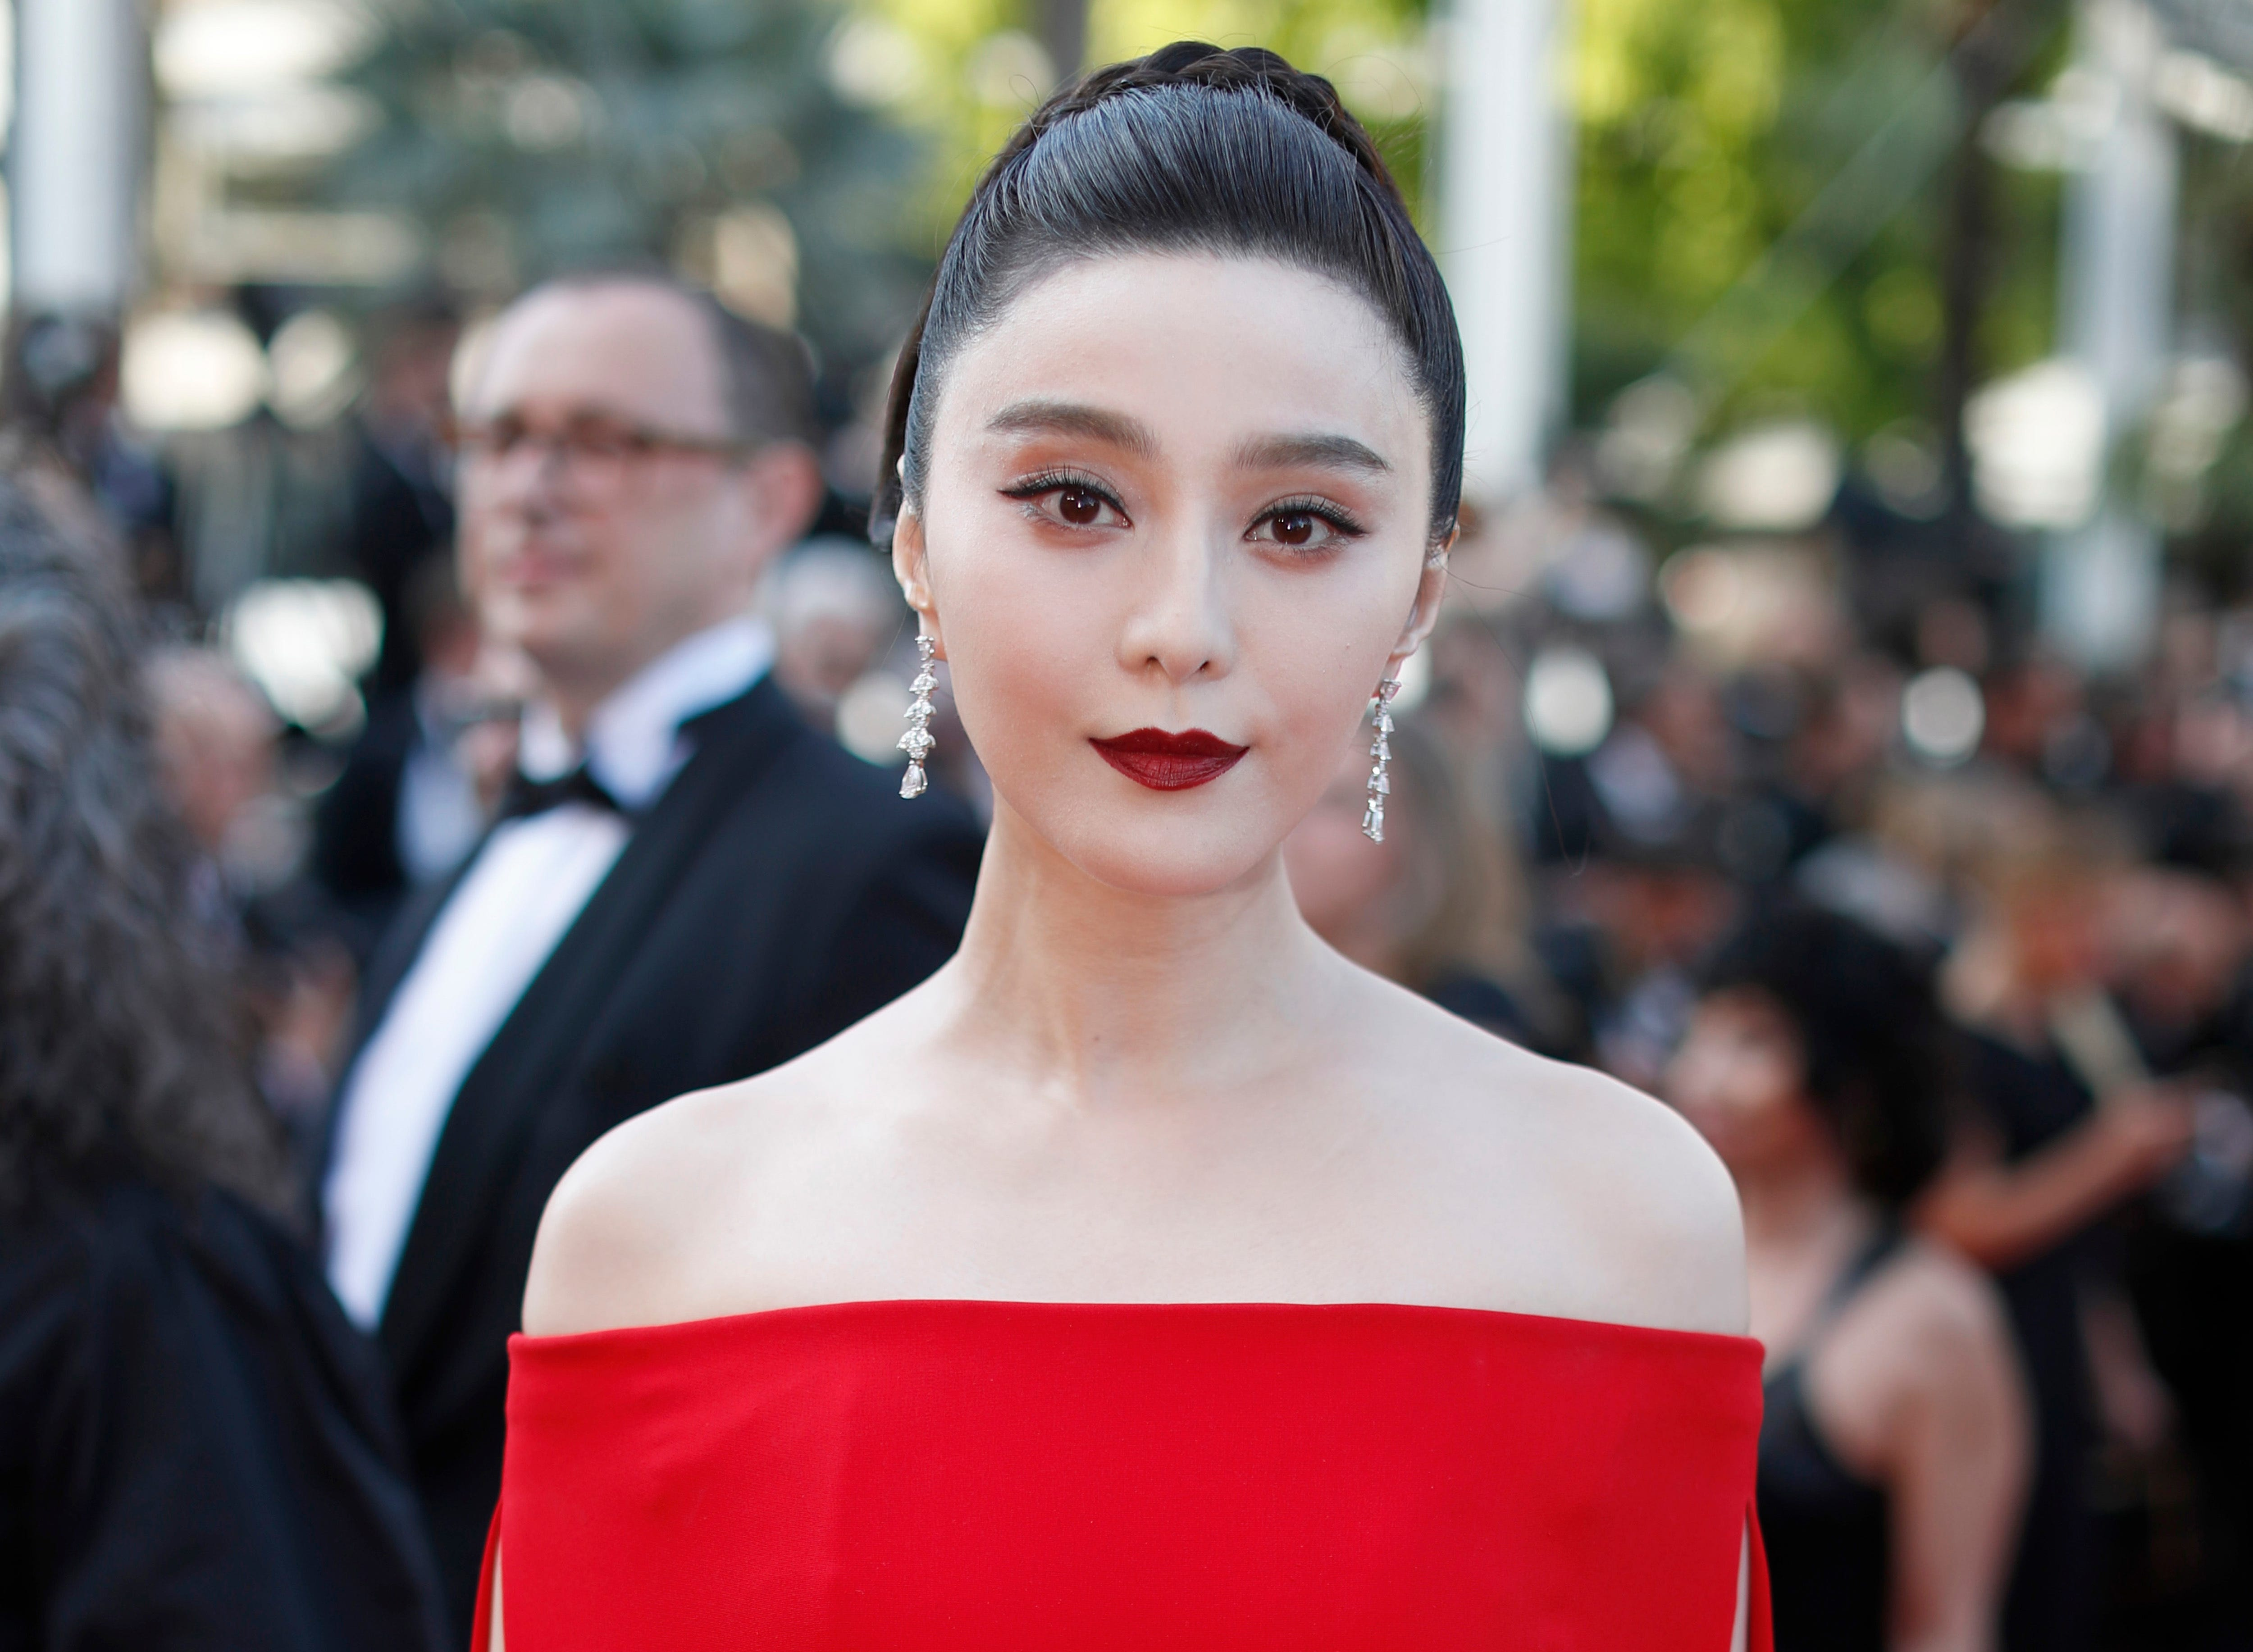 Discussion on this topic: Jean-Louis Roux, fan-bingbing/